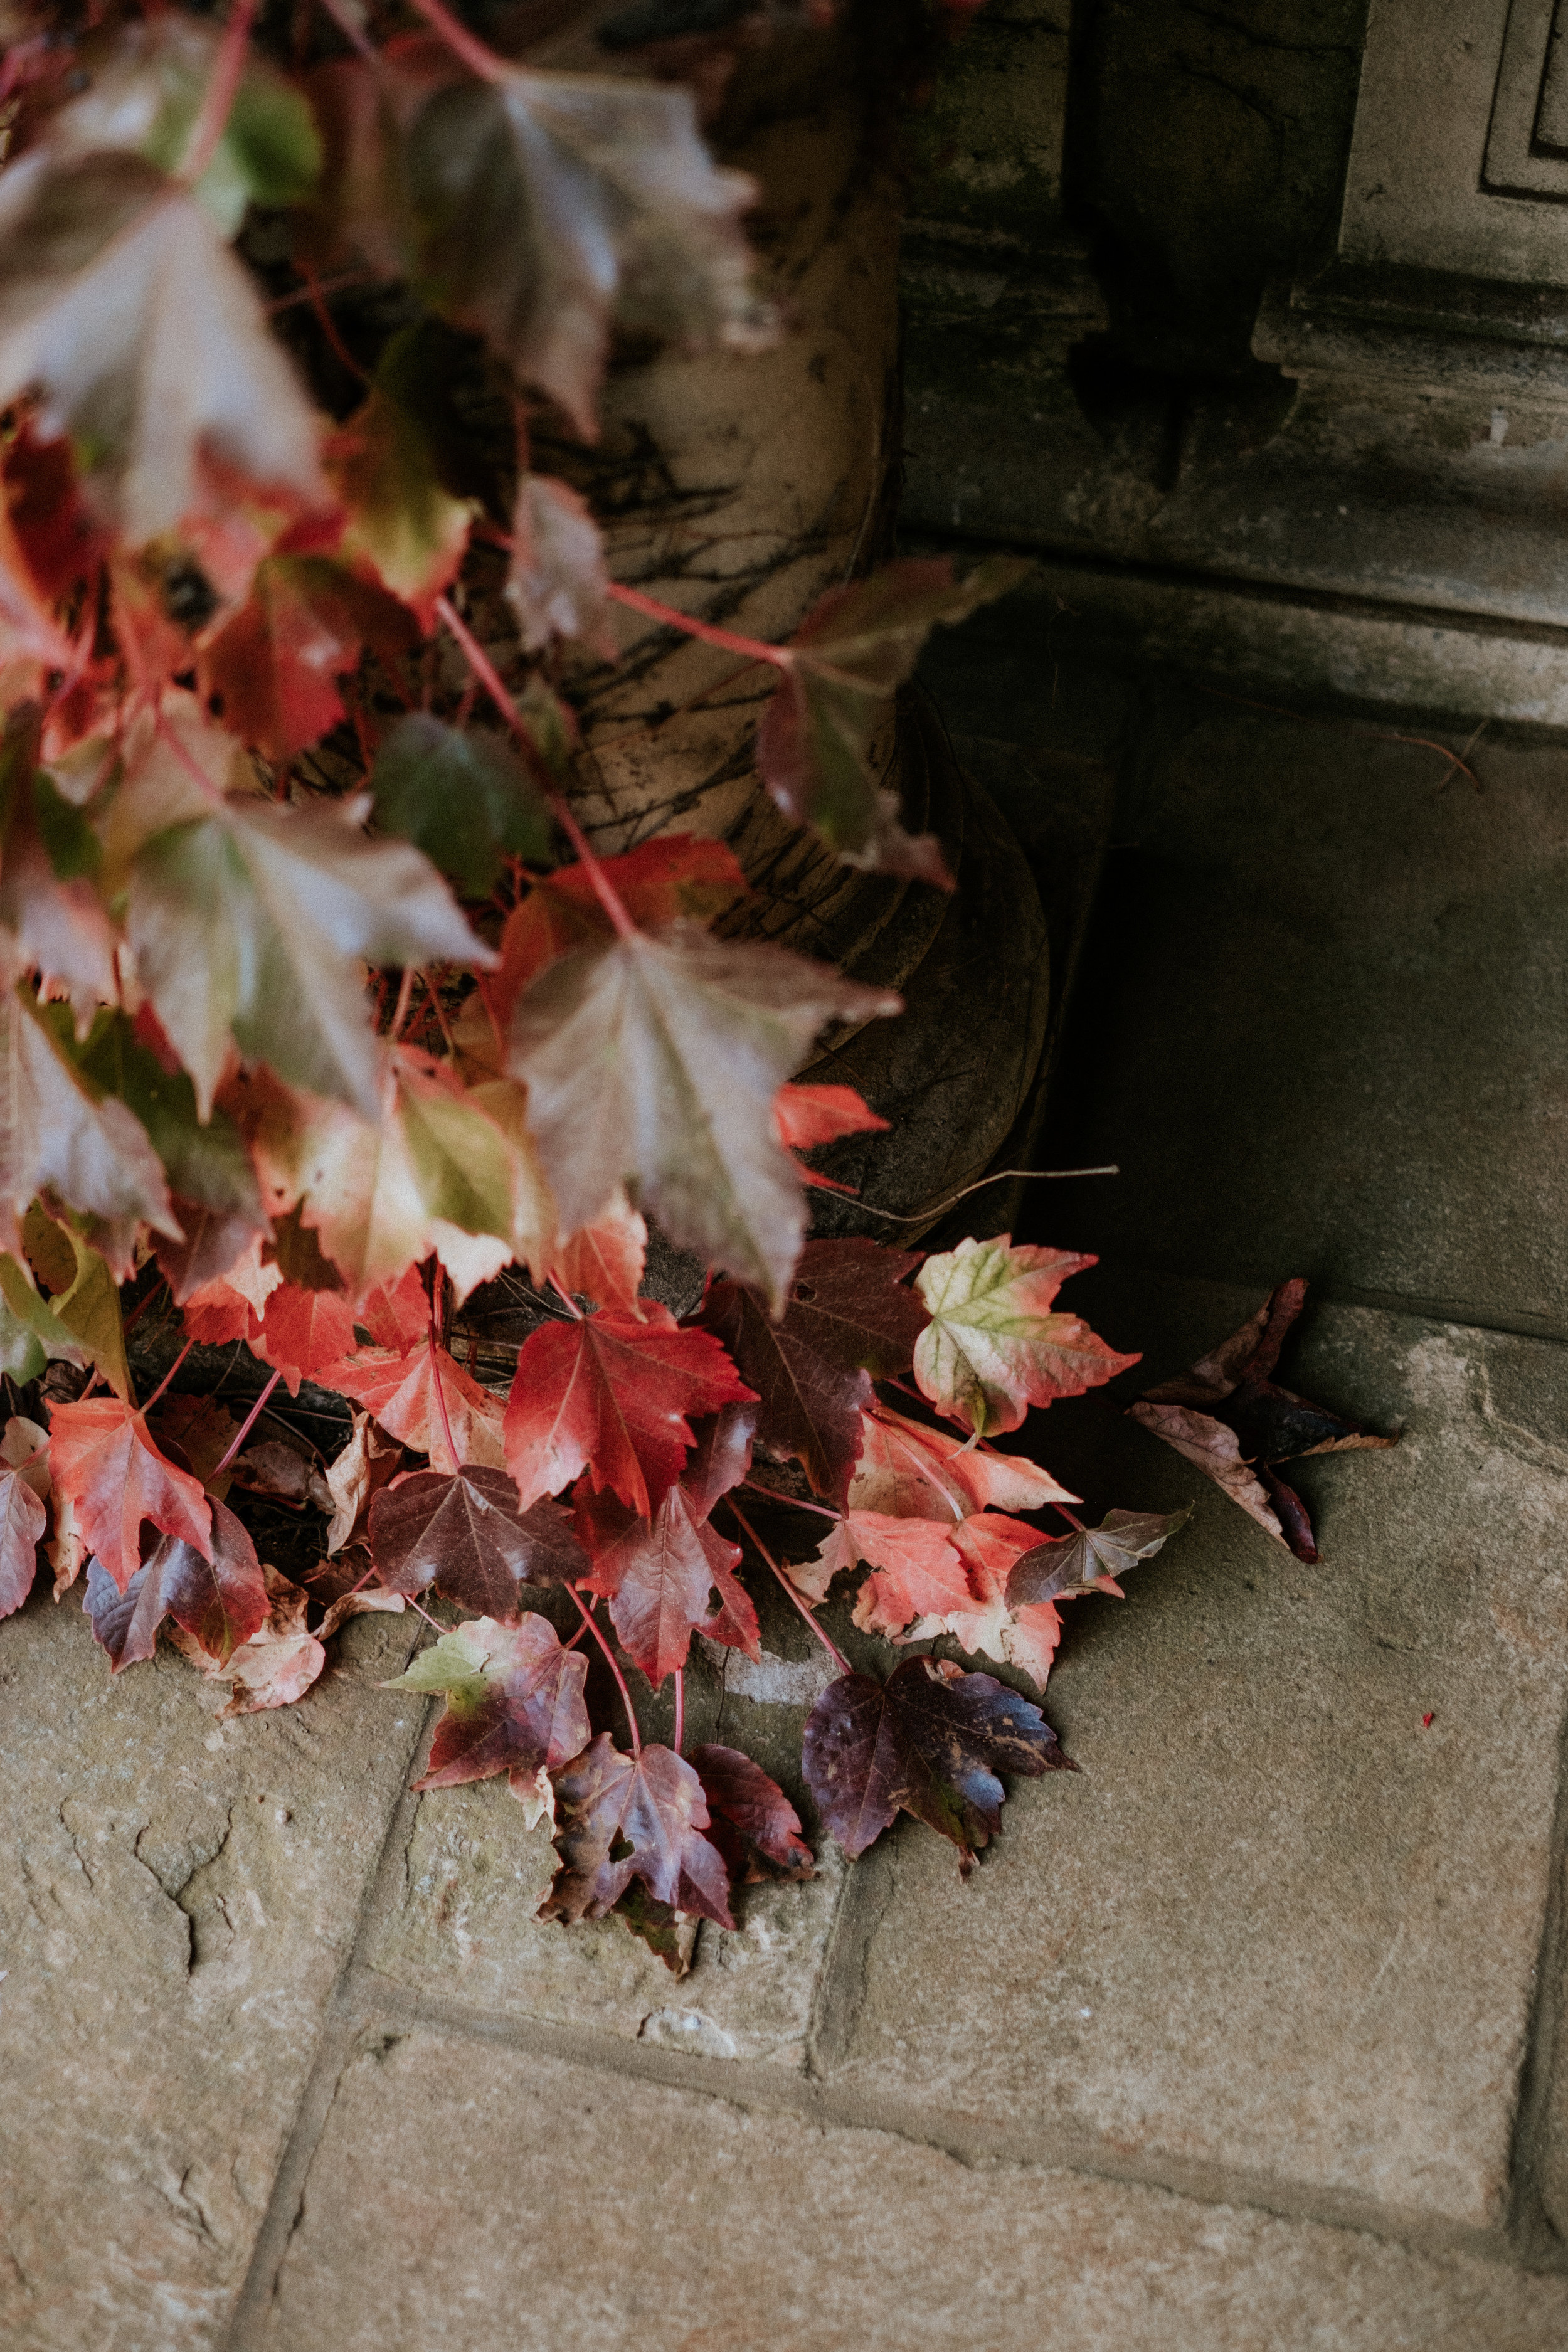 Image by photographer Van Middleton at beautiful Bendooley Estate in Berrima, Southern Highlands NSW.